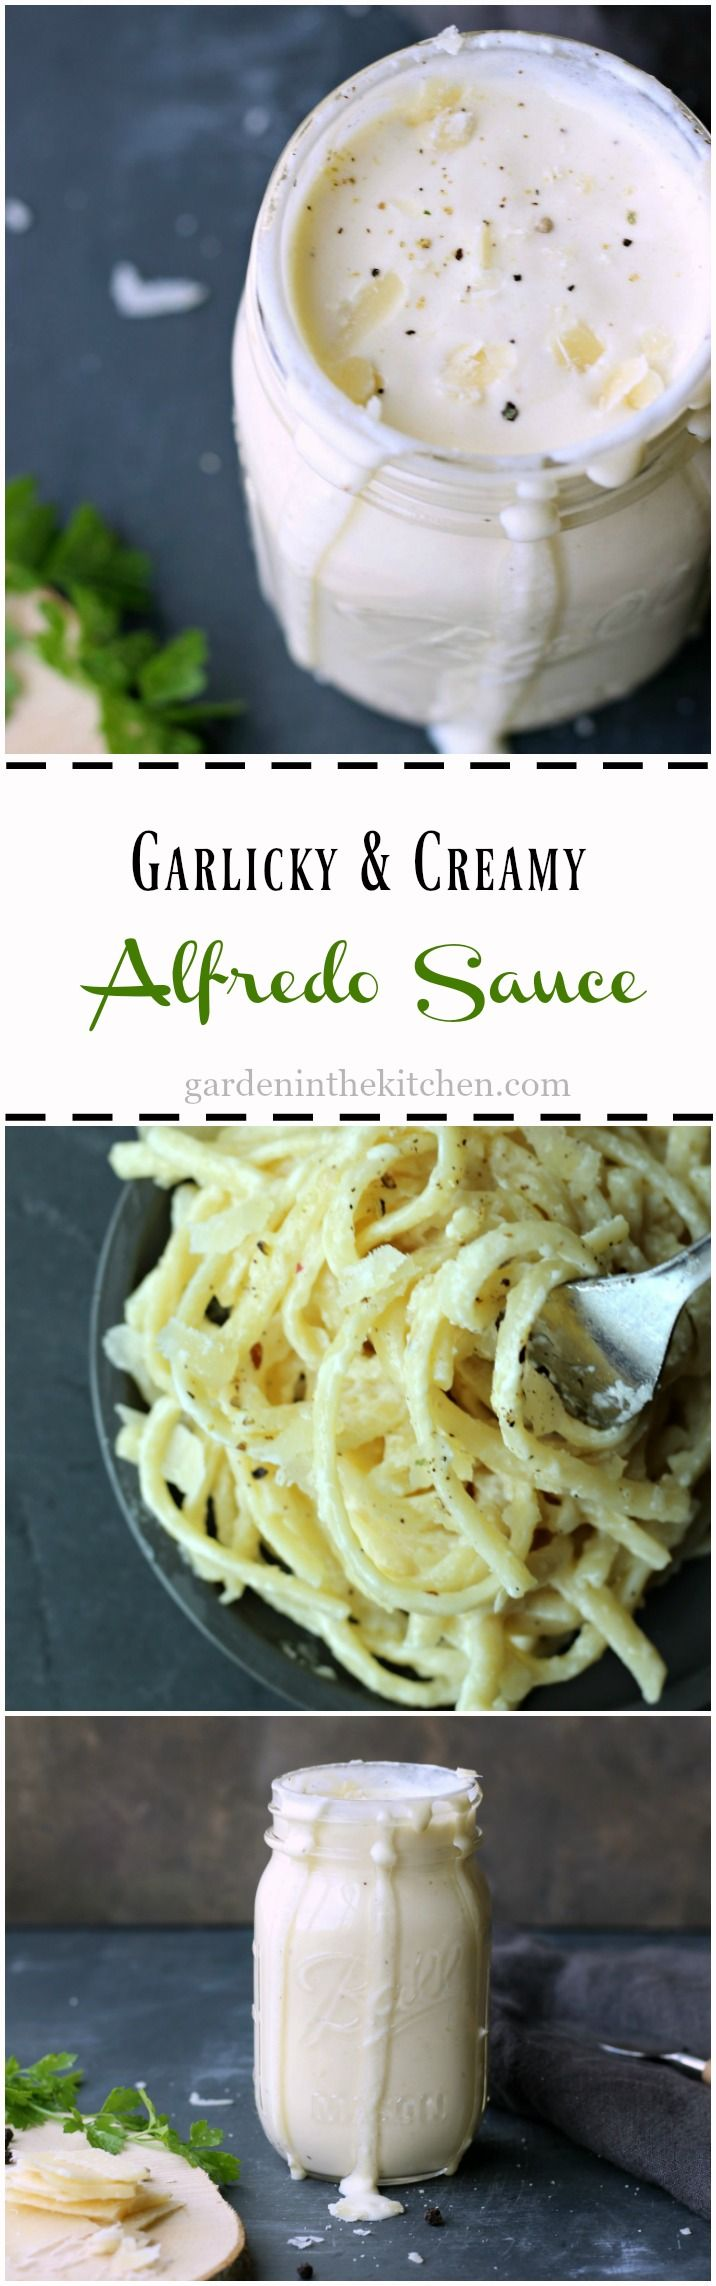 Garlicky creamy homemade Alfredo Sauce, a perfect finish to your pasta dish! gardeninthekitchen.com